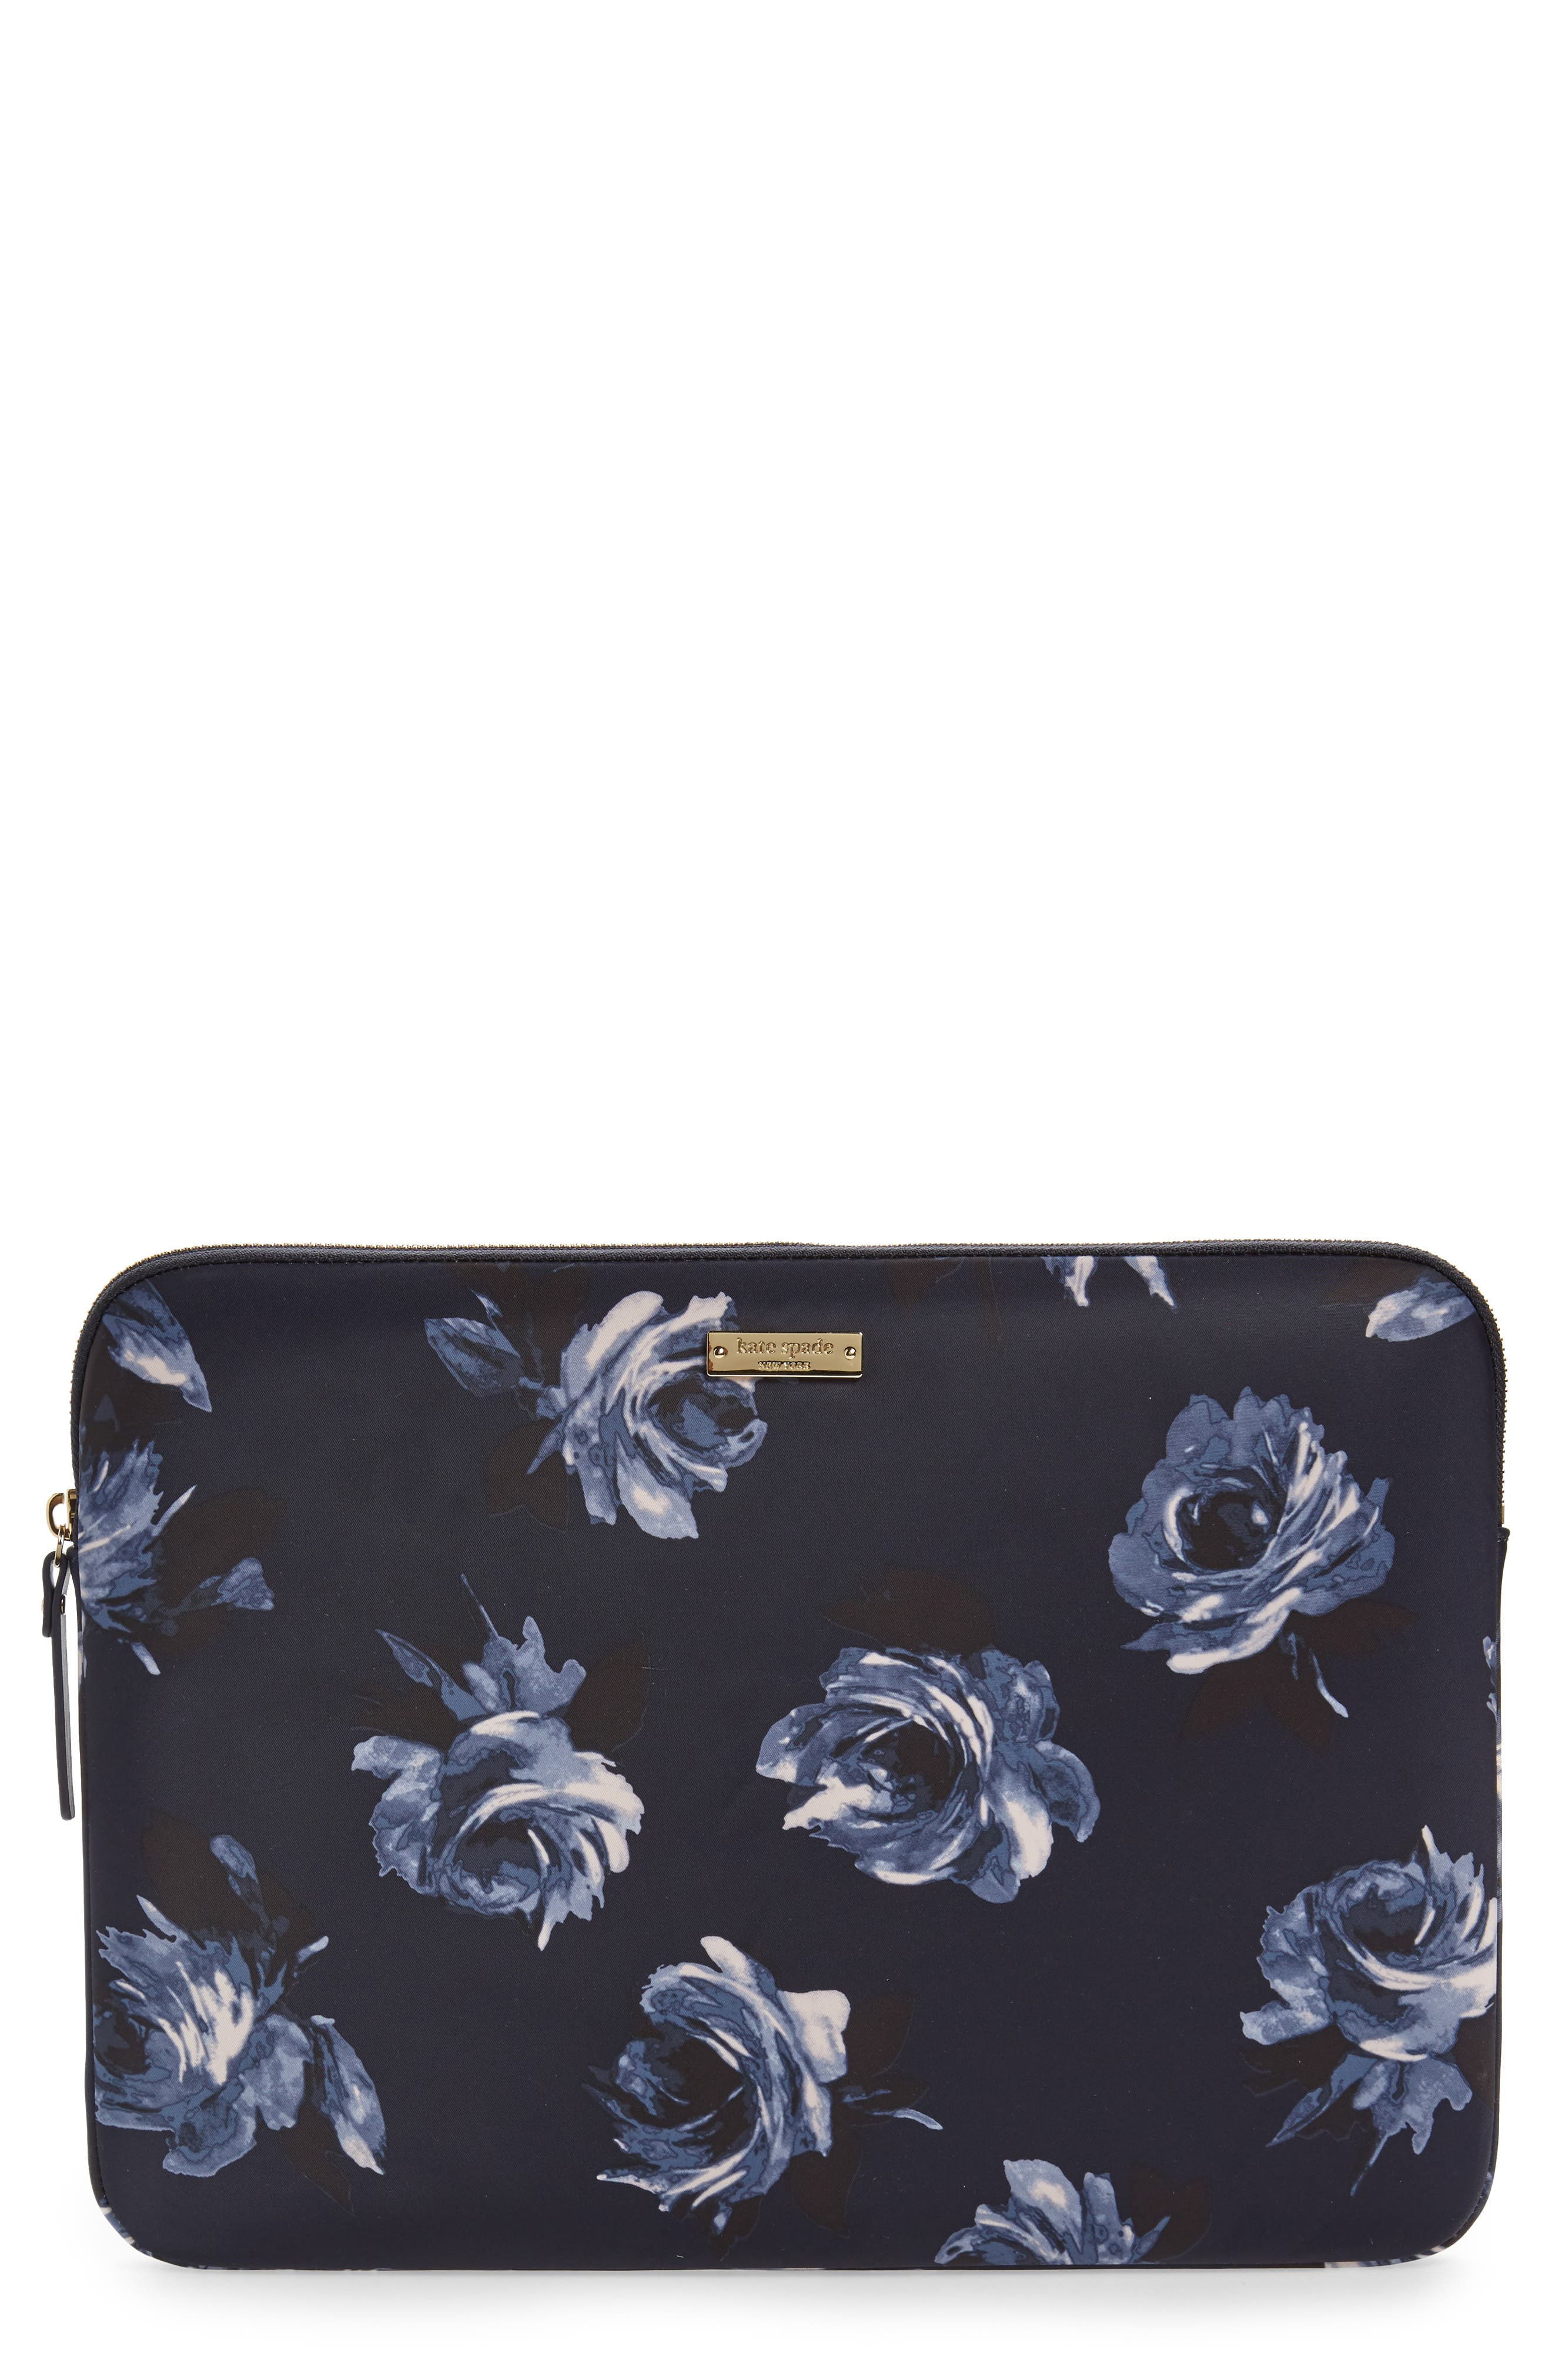 night rose 13-Inch laptop sleeve,                             Main thumbnail 1, color,                             Multi